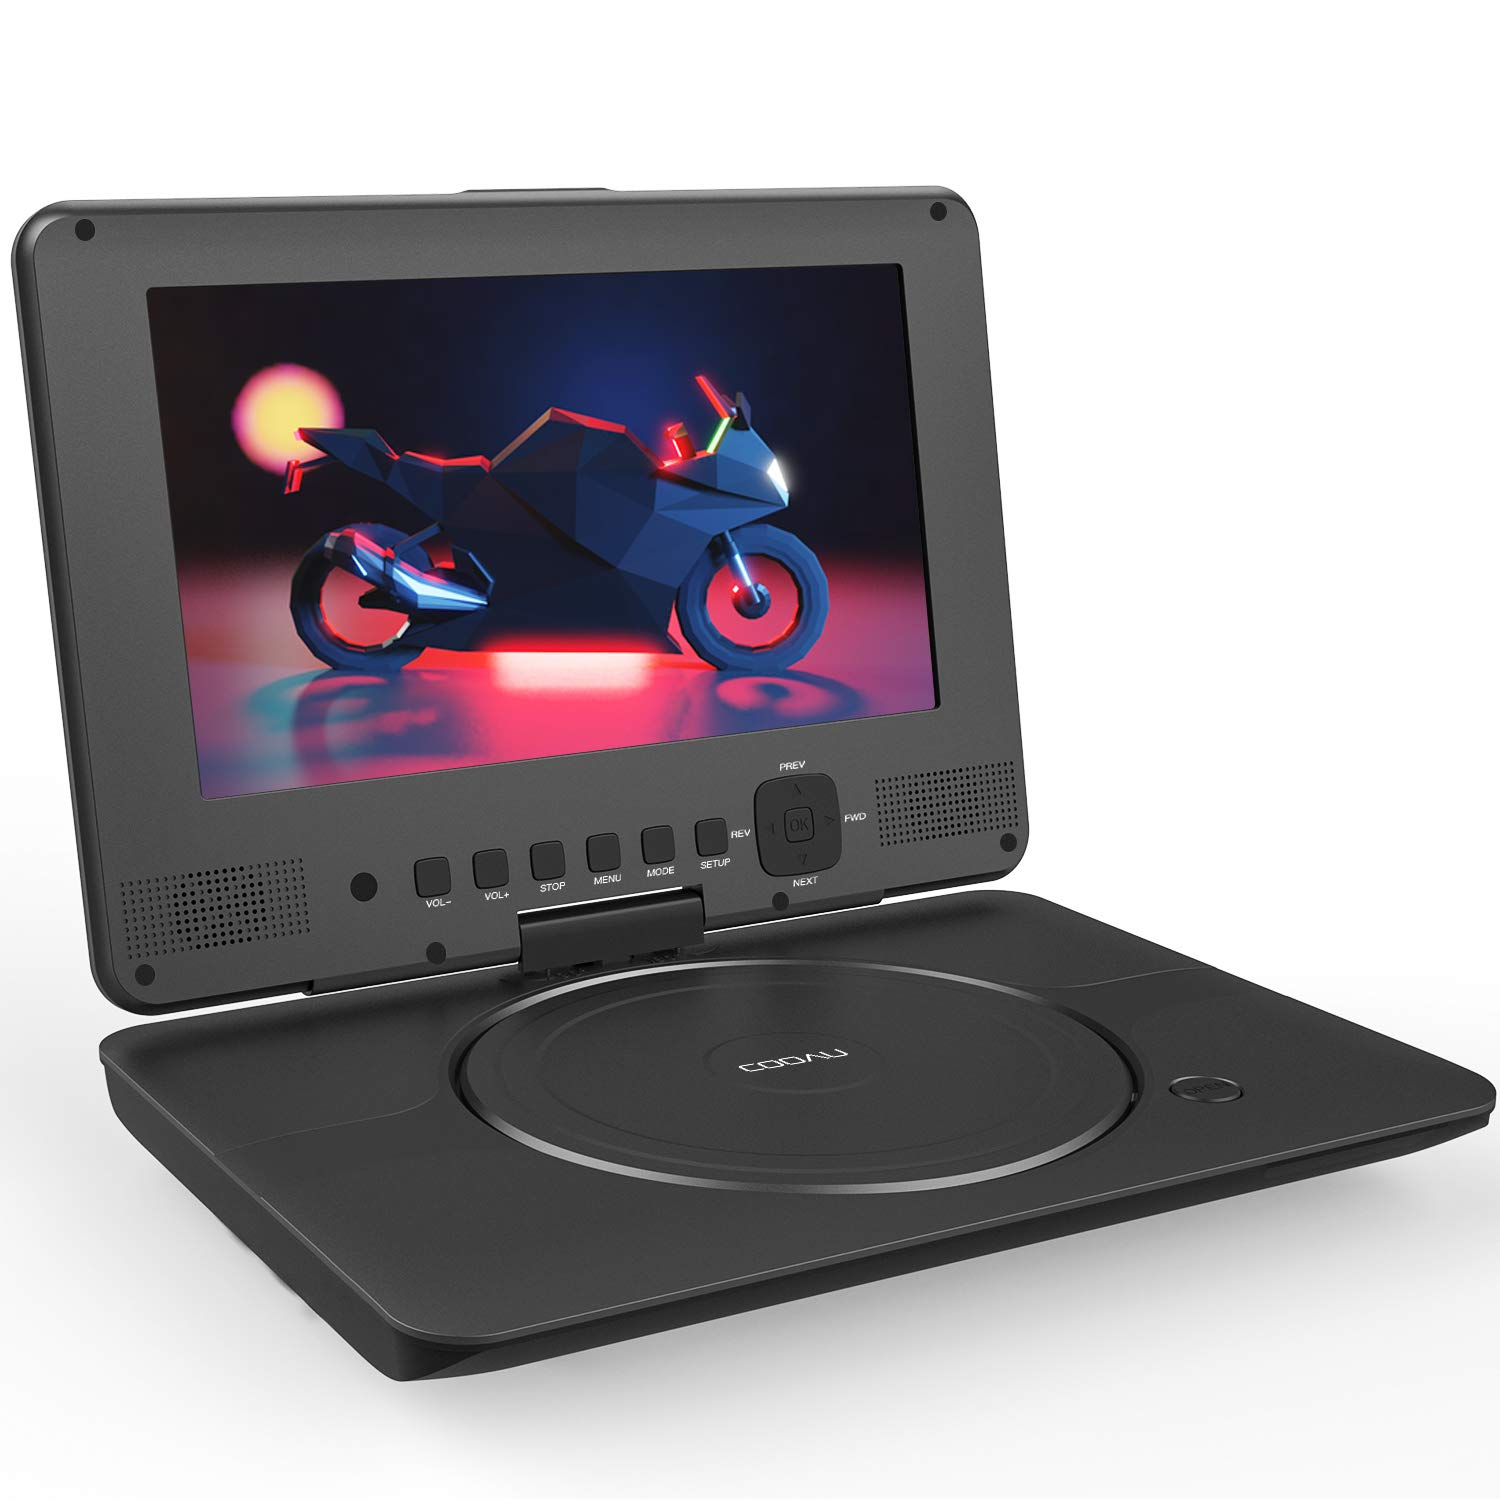 COOAU Portable DVD Player Upgraded 12'' with HD Swivel Screen, Support All Region & Full DVD Format Discs, 1080P Video Files, Front Control Button and IR Signal, Battery Indicator, Classic Black